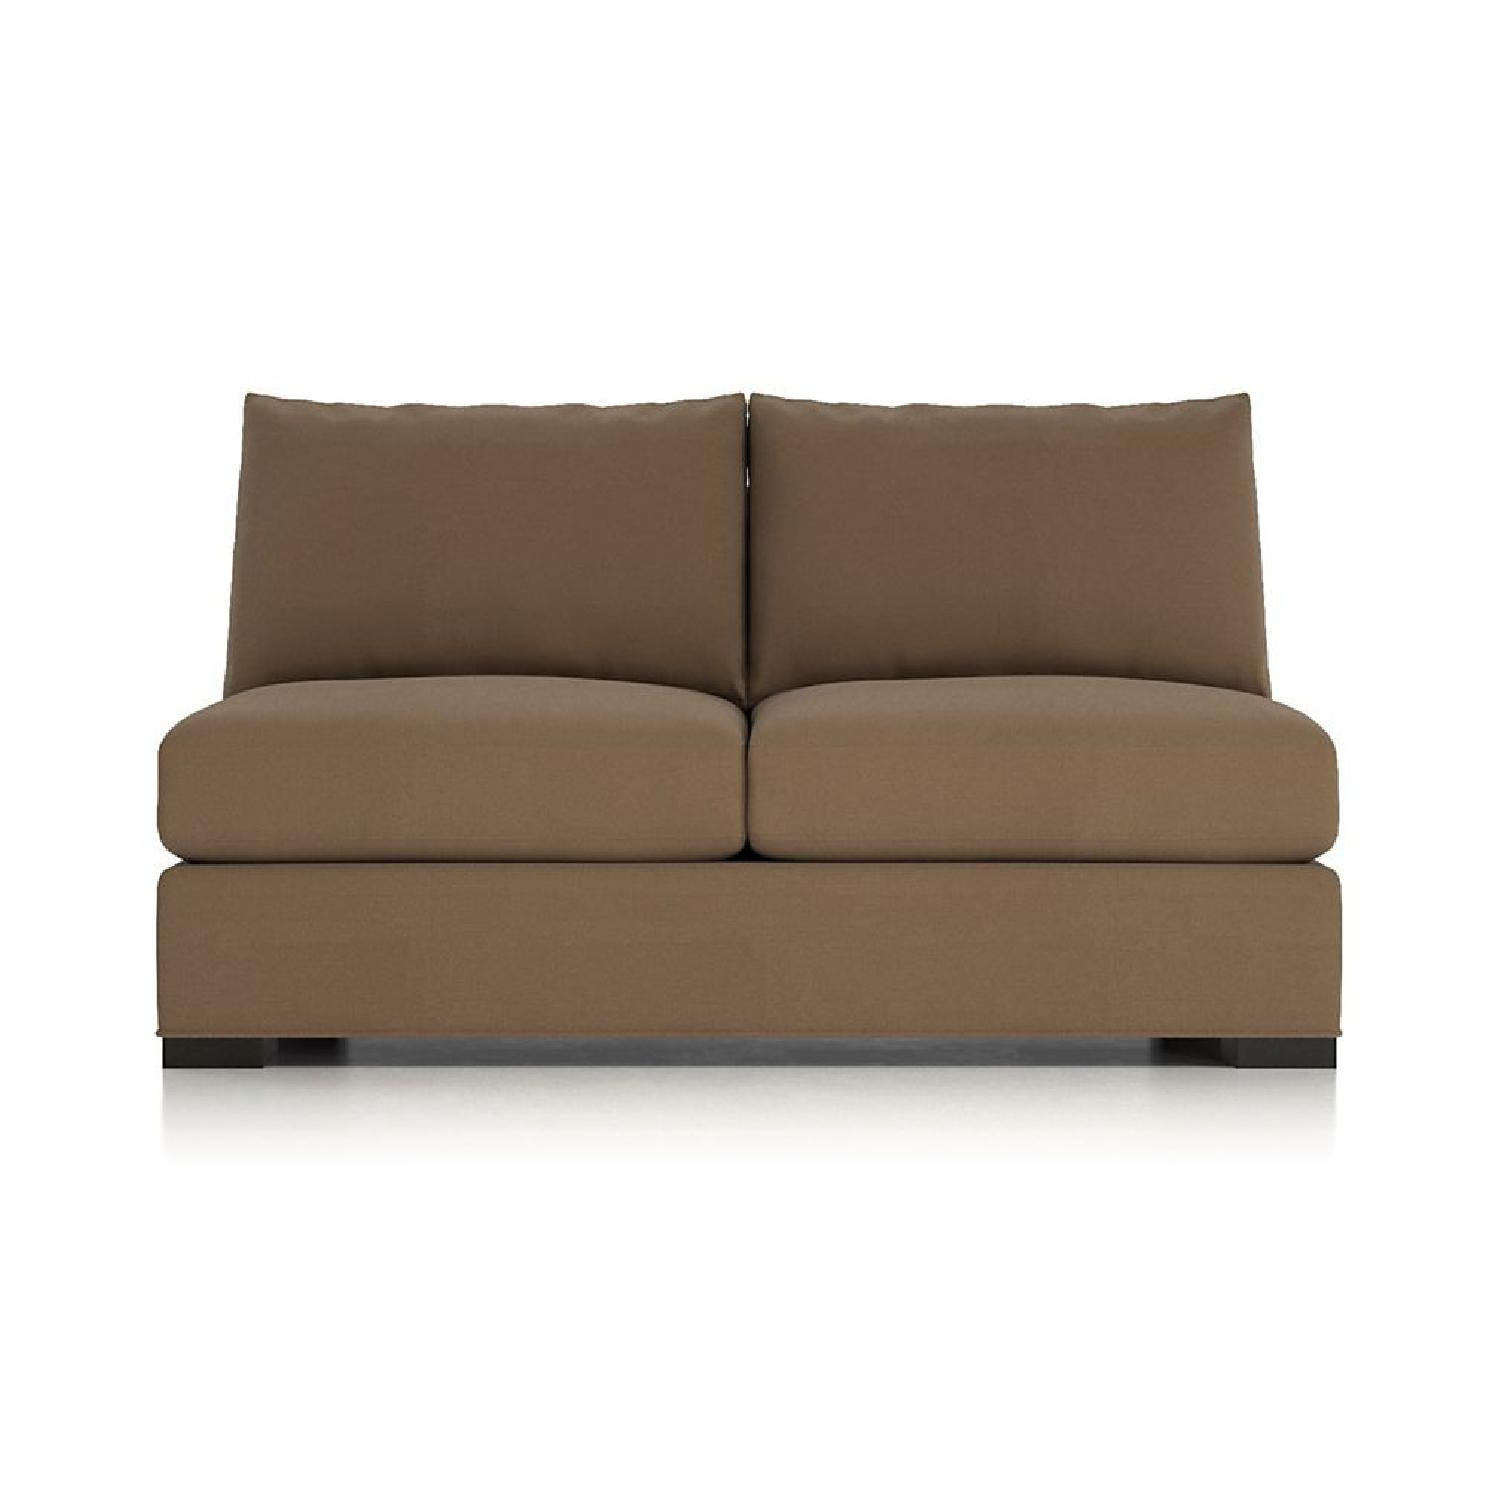 Crate & Barrel Axis 3-Piece Sectional Sofa - image-3